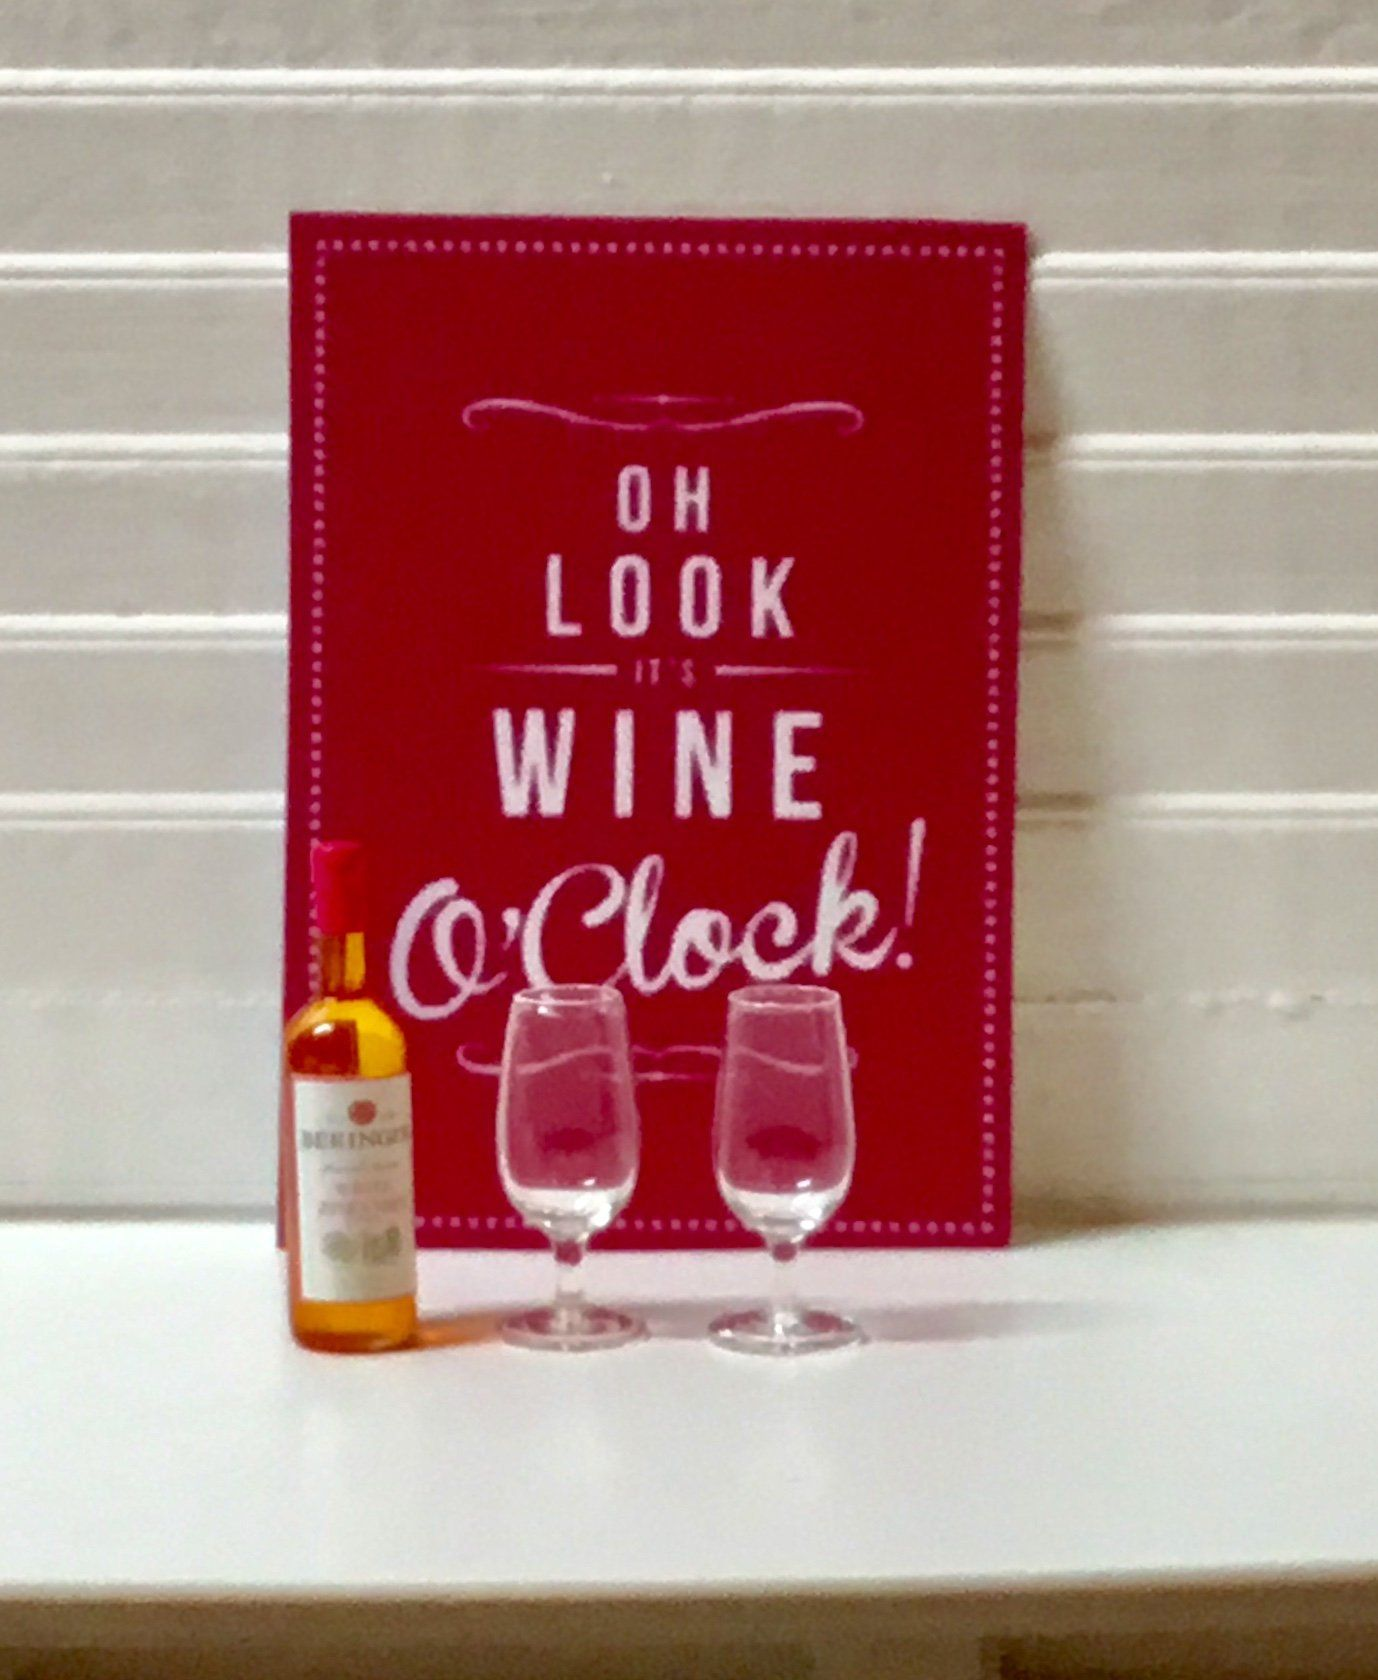 Dollhouse Miniature Bottle Of White Zinfandel Wine And Two Wine Glasses Or Wine Sign 1 12 Scale By Minifuntimes Wine Signs Miniature Bottles White Zinfandel